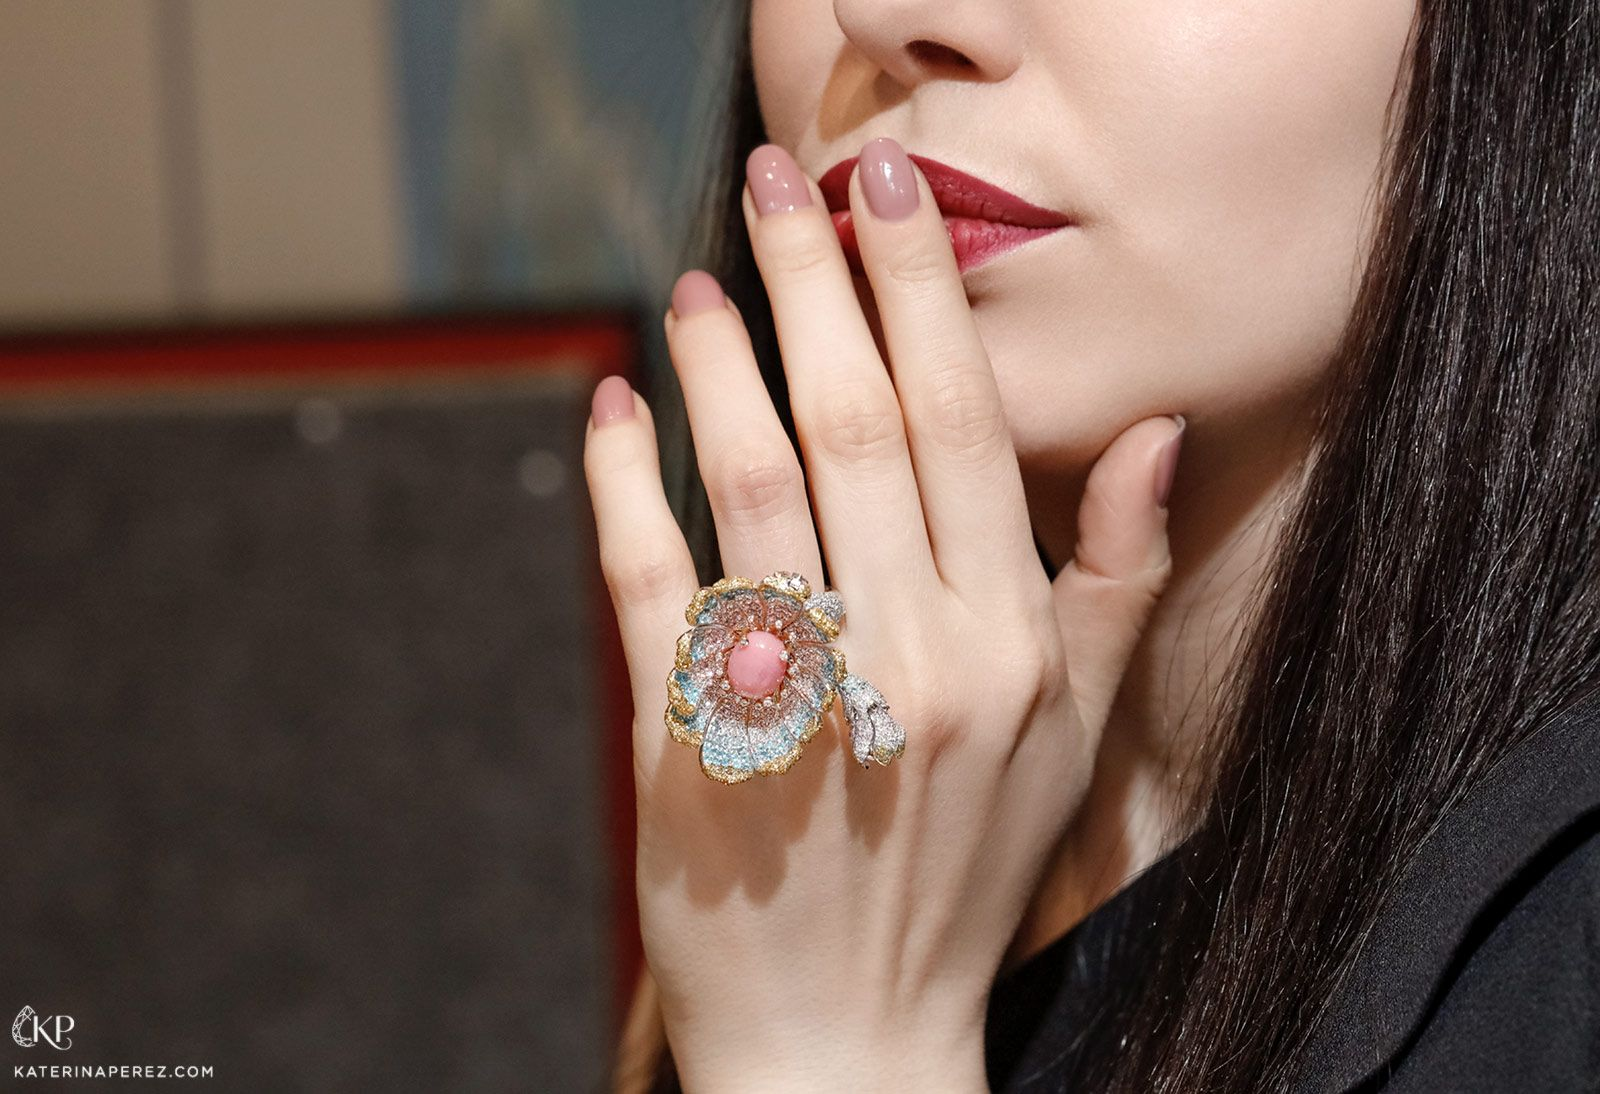 The Gerbera Flower Ring With Conch Pearl By Alessio Boschi Conch Pearl Blue Sapphire Rings Stylish Rings